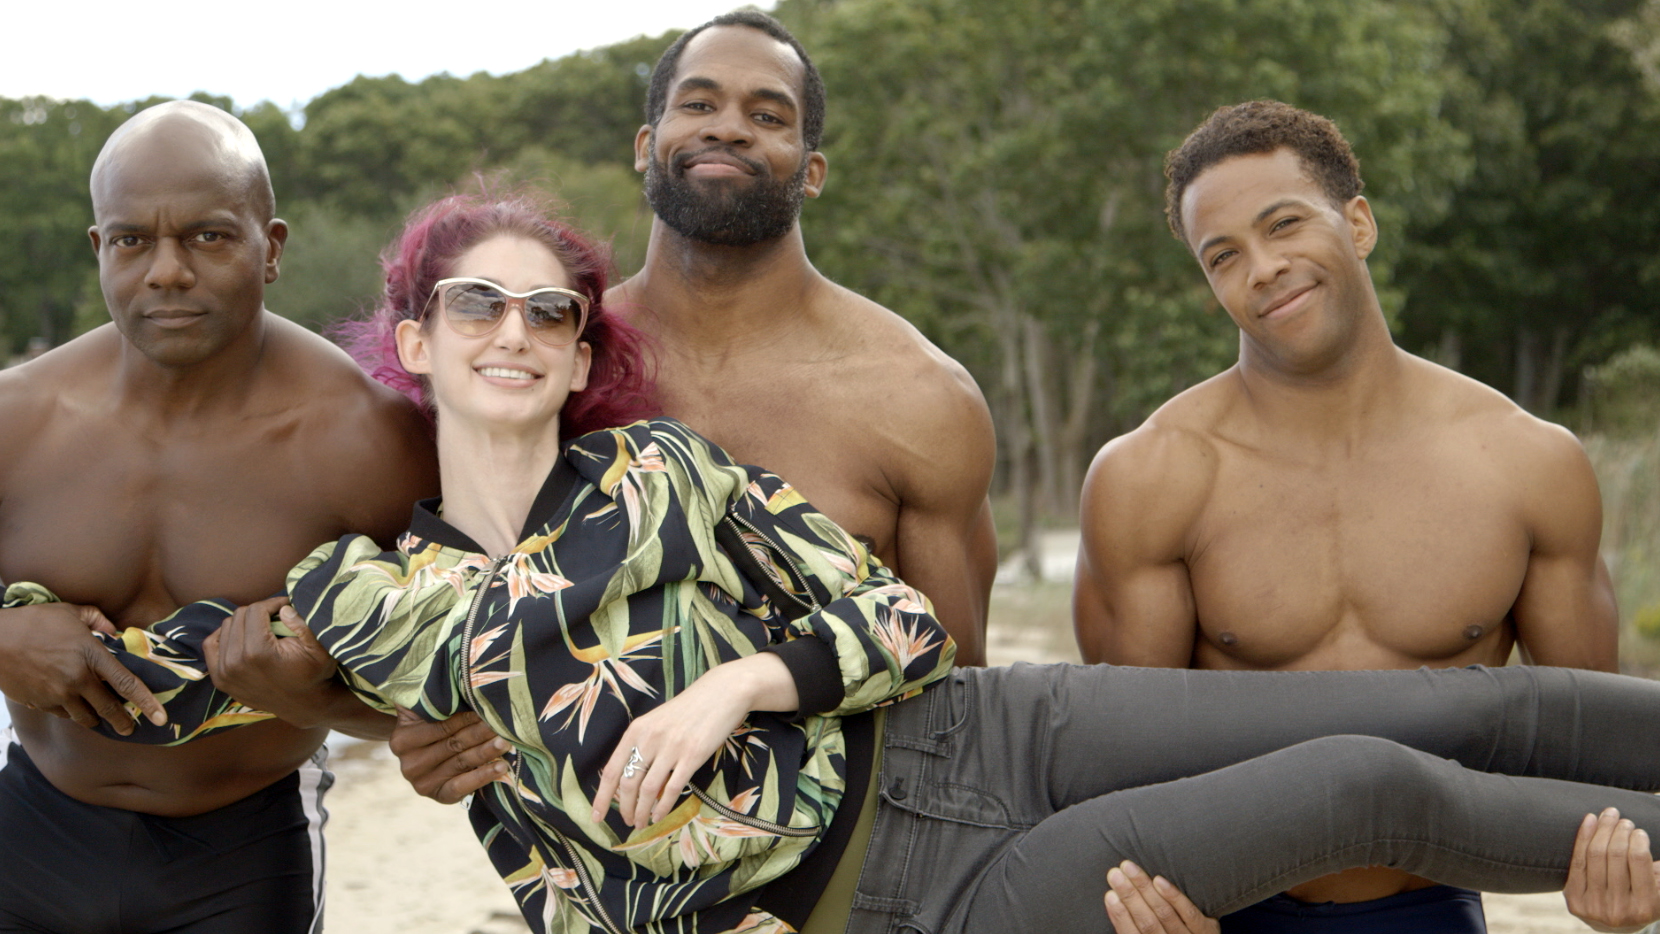 Writer, Director/Producer Geena Matuson with Actors Kevin Peterson, Reggie Joseph, and Sean Brown on the set of her production for comedic 'beach ads,' part of her 'Fauxmercials' series filming through 2017.